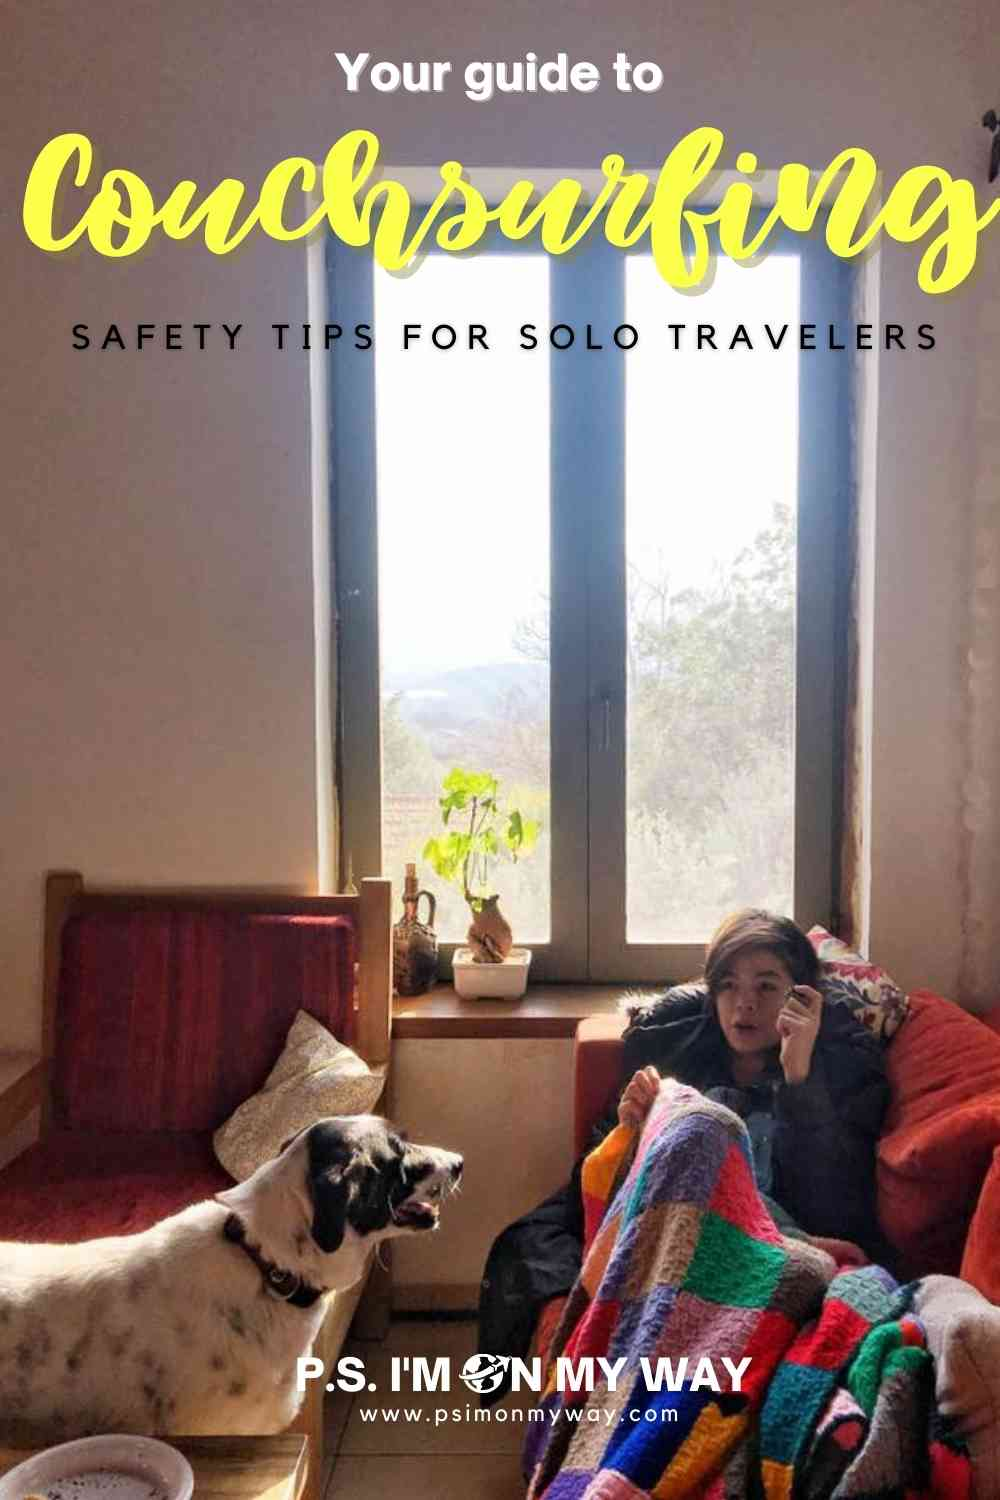 couchsurfing safety tips